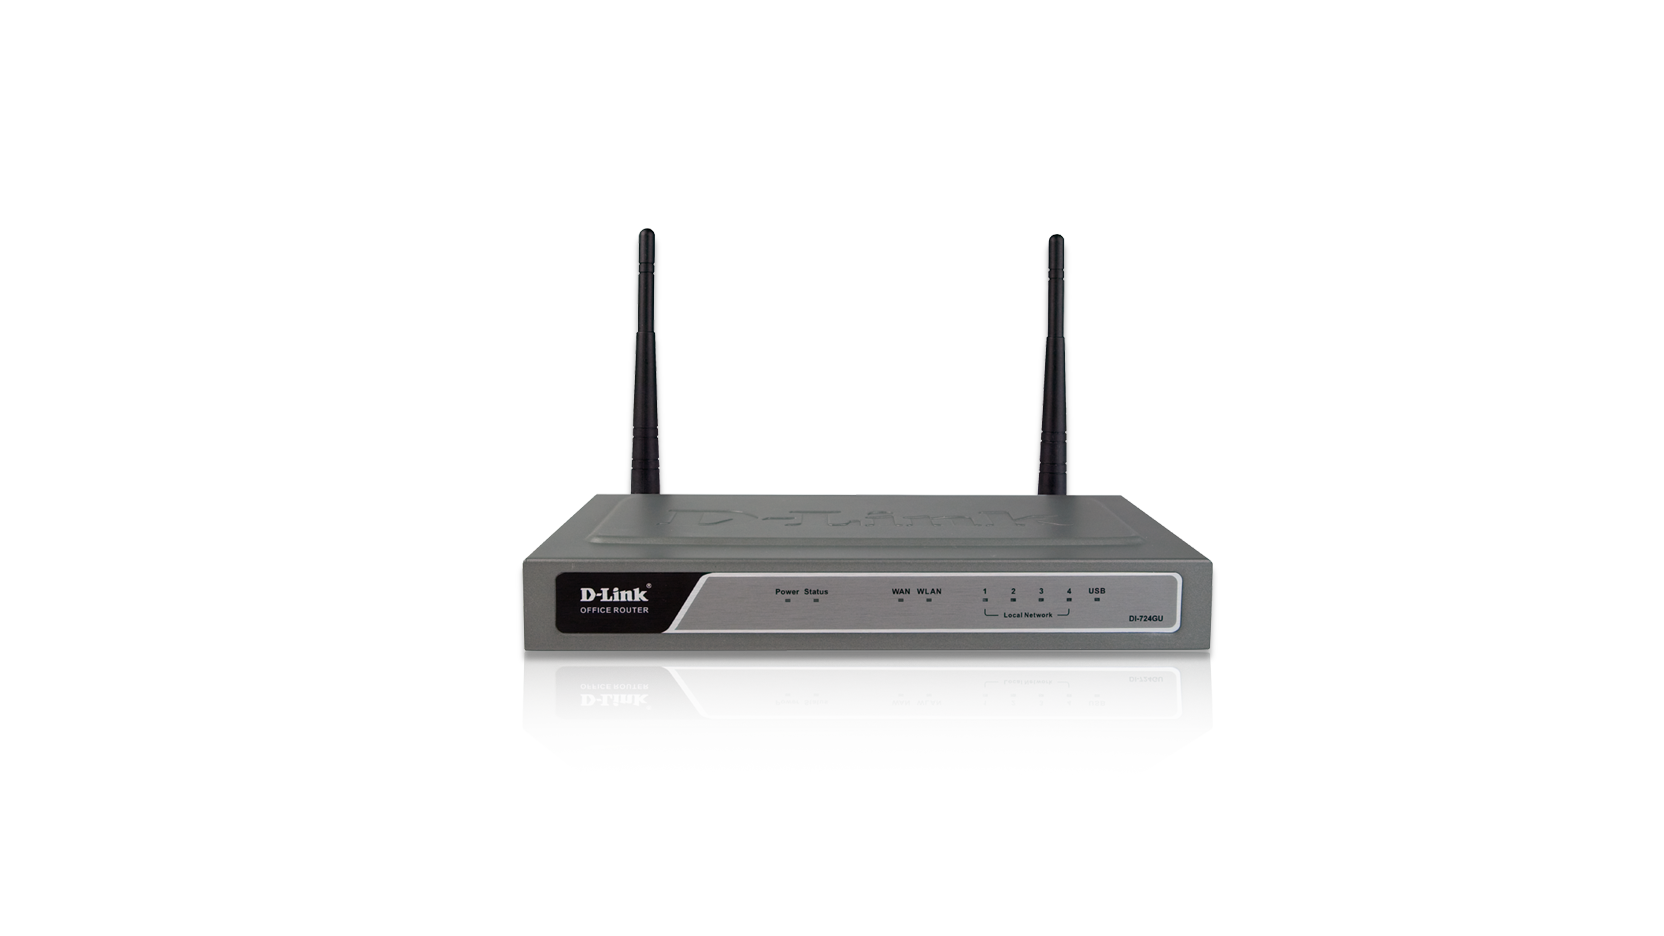 D-LINK 108G DRIVERS FOR WINDOWS